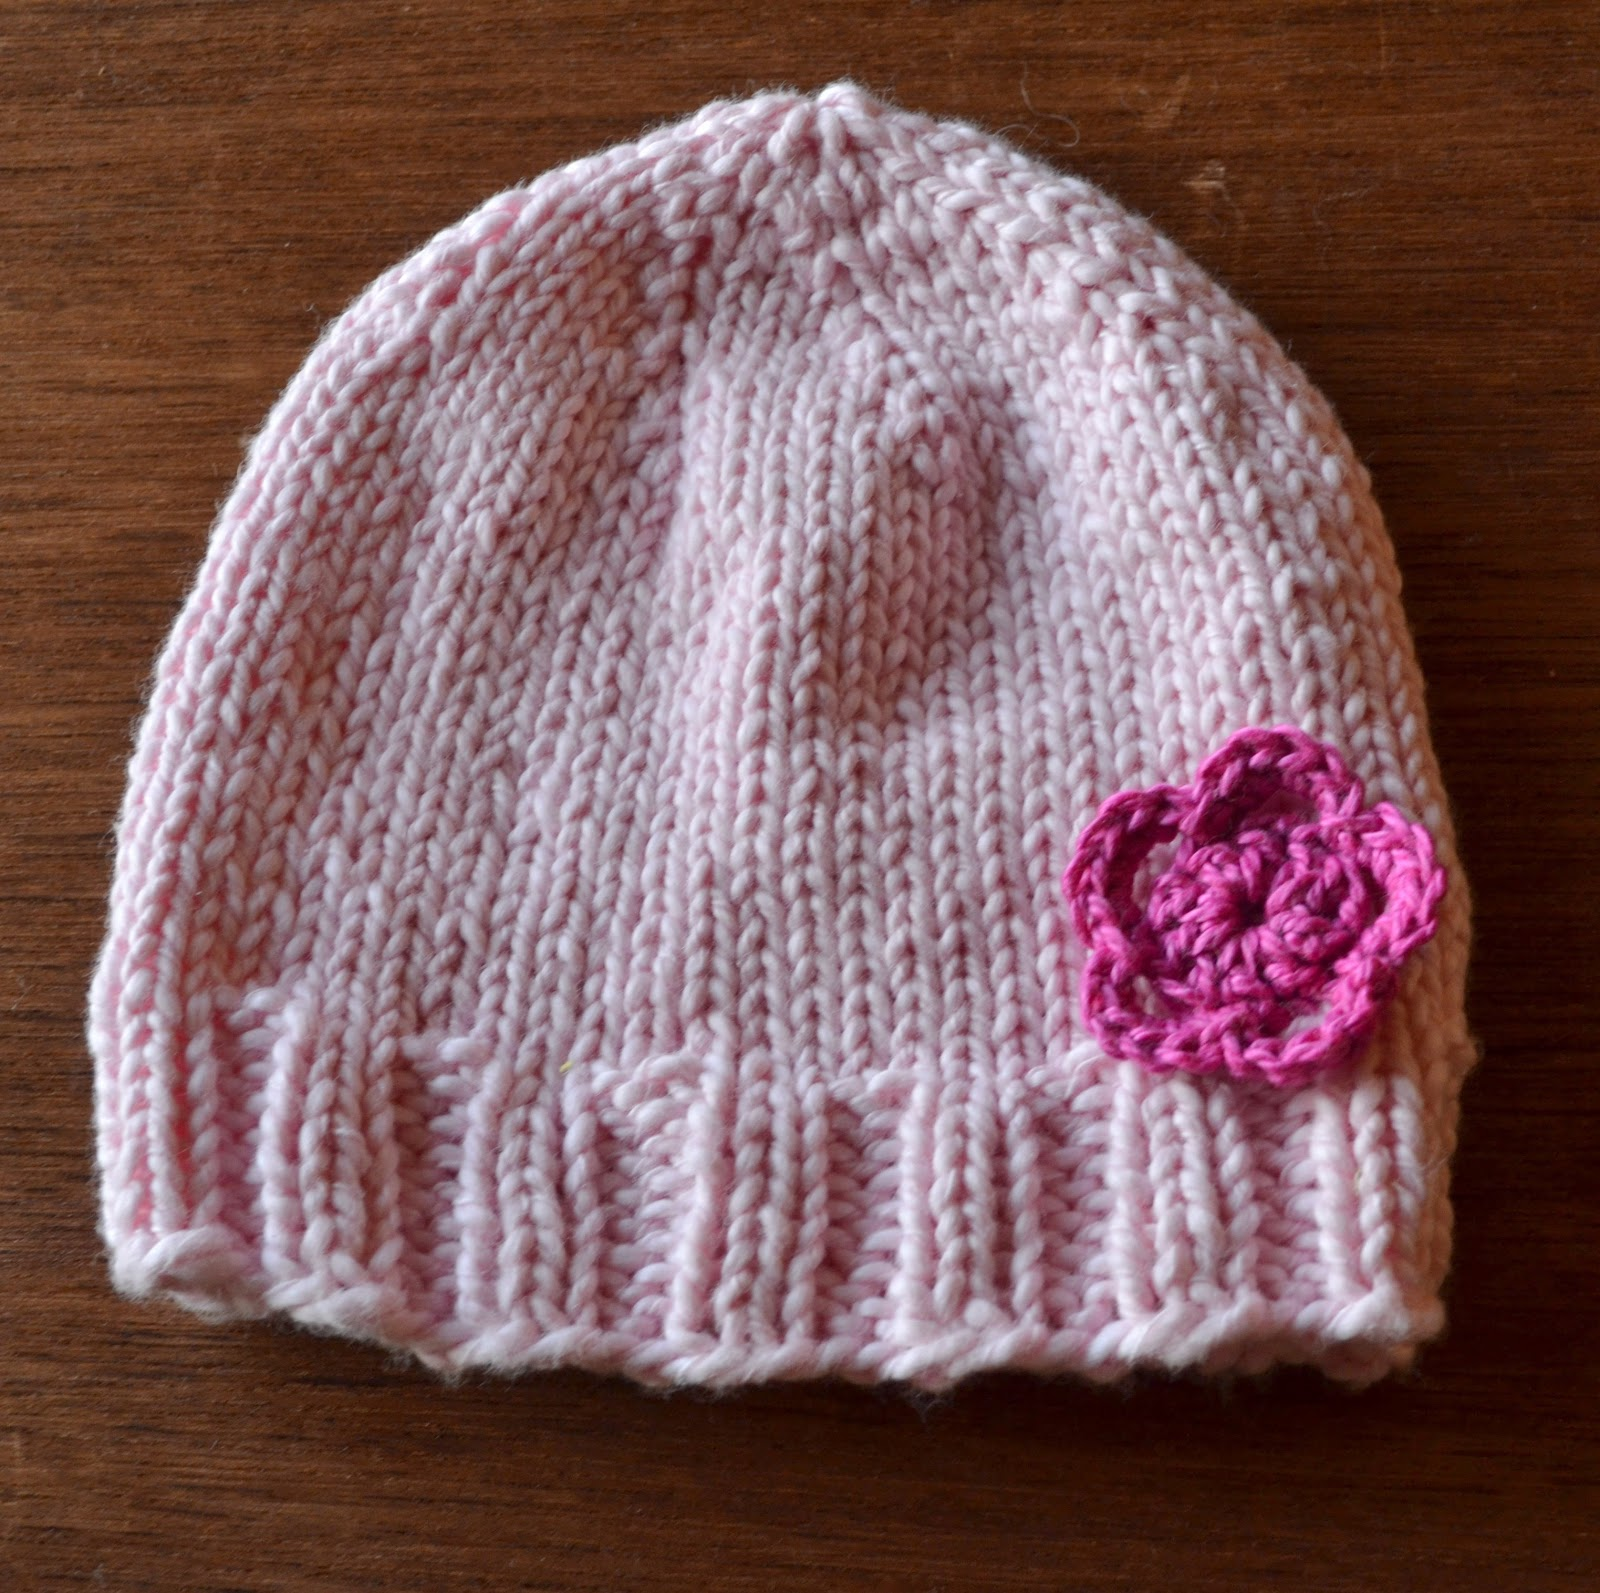 Crochet Patterns Baby Hats With Flowers : field wonderful: flower baby hat (and a little crochet ...